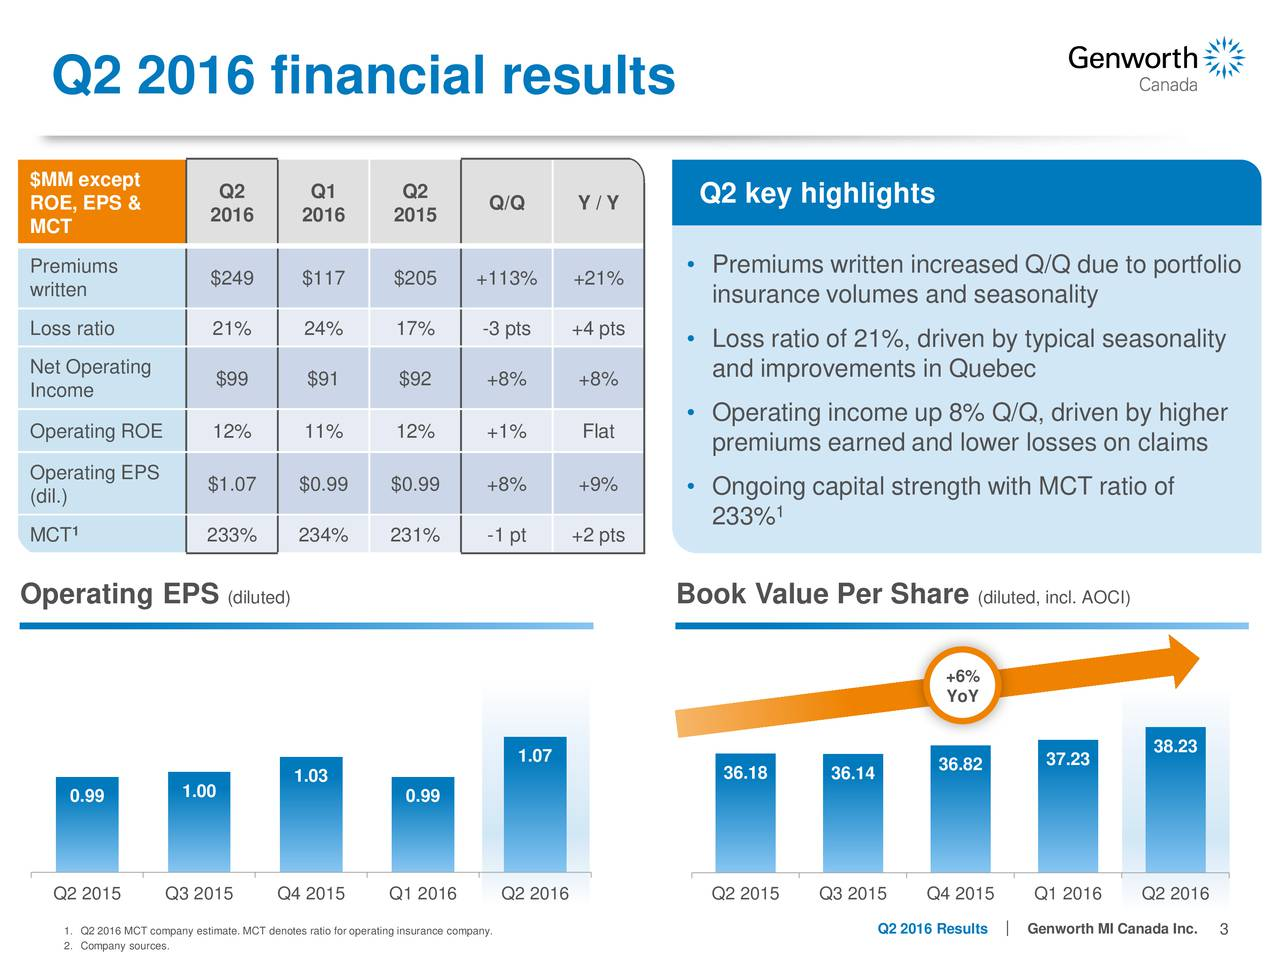 $MM except Q2 Q1 Q2 Q2 key highlights ROE, EPS & 2016 2016 2015 Q/Q Y / Y MCT Premiums  Premiums written increased Q/Q due to portfolio written $249 $117 $205 +113% +21% insurance volumes and seasonality Loss ratio 21% 24% 17% -3 pts +4 pts Loss ratio of 21%, driven by typical seasonality Net Operating and improvements in Quebec Income $99 $91 $92 +8% +8% Operating income up 8% Q/Q, driven by higher Operating ROE 12% 11% 12% +1% Flat premiums earned and lower losses on claims Operating EPS $1.07 $0.99 $0.99 +8% +9%  Ongoing capital strength with MCT ratio of (dil.) 1 1 233% MCT 233% 234% 231% -1 pt +2 pts Operating EPS (diluted) Book Value Per Share (diluted, incl. AOCI) +6% YoY 38.23 1.07 36.82 37.23 1.03 36.18 36.14 0.99 1.00 0.99 Q2 2015 Q3 2015 Q4 2015 Q1 2016 Q2 2016 Q2 2015 Q3 2015 Q4 2015 Q1 2016 Q2 2016 2. Company sources.any estimate. MCT denotes ratio for operating insurance company.2016 ResultGenworth MI Canada 3nc.